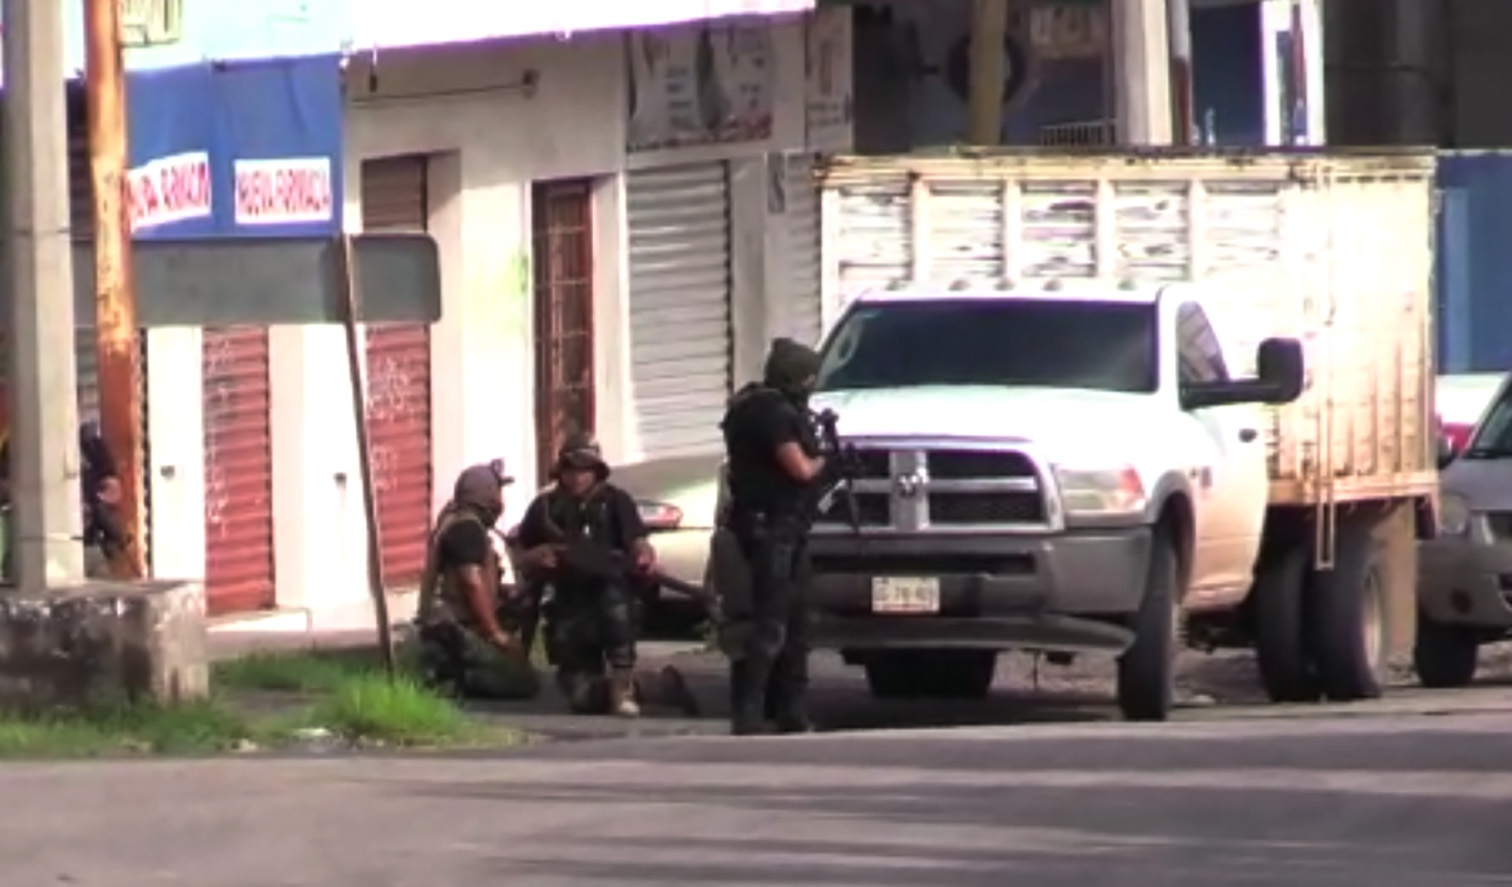 El Chapo's son caught and released by Mexican police after intense gunfight